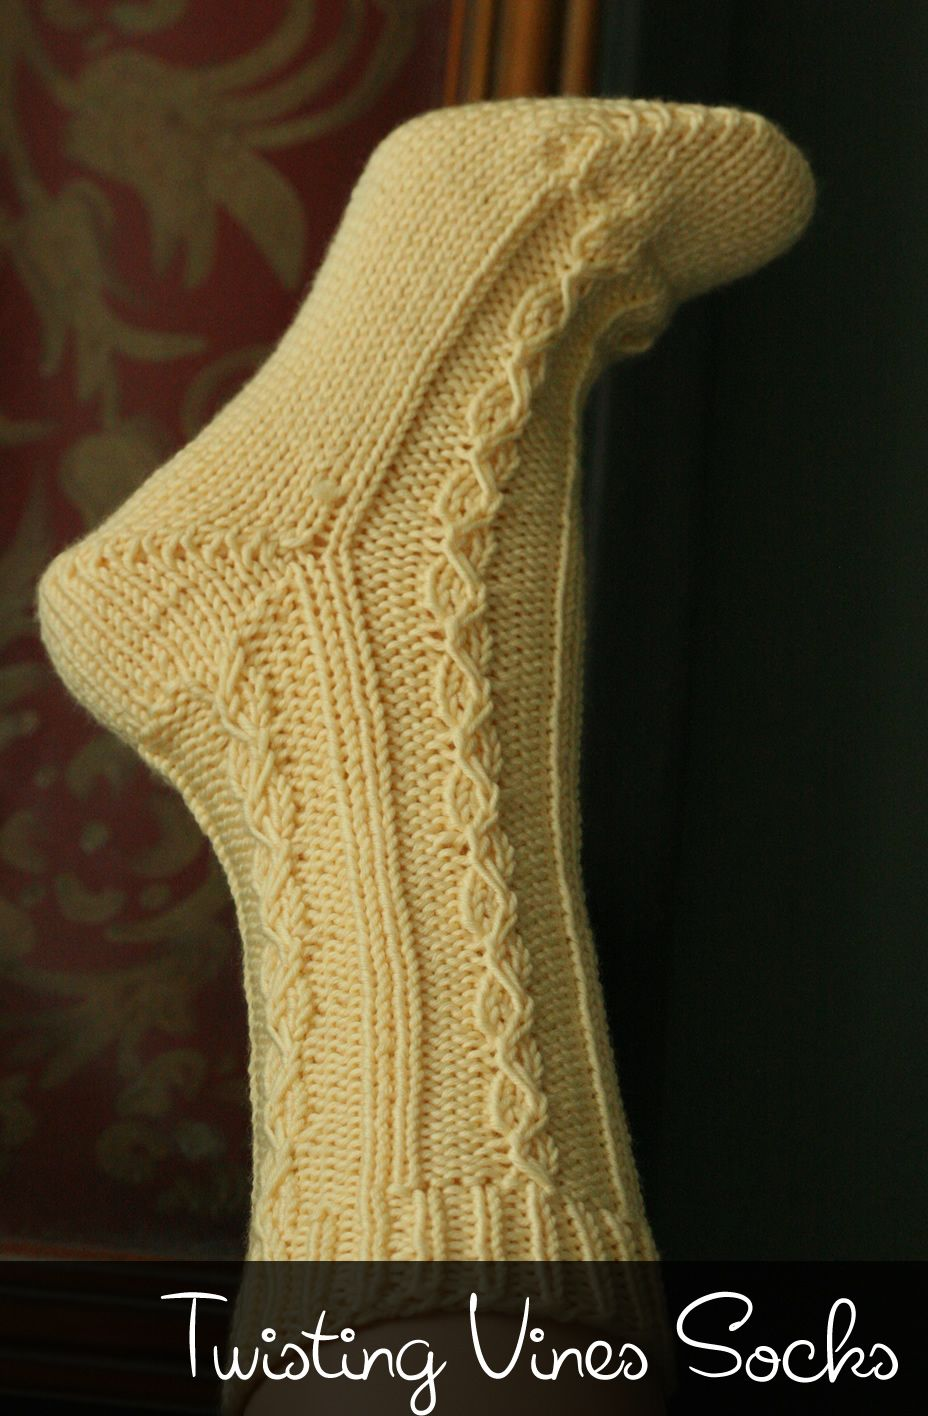 Small Dog Knitted Sweater Pattern Free : Twisting Vines Socks loom pattern Yarn - Loom Knitting and Lace P?